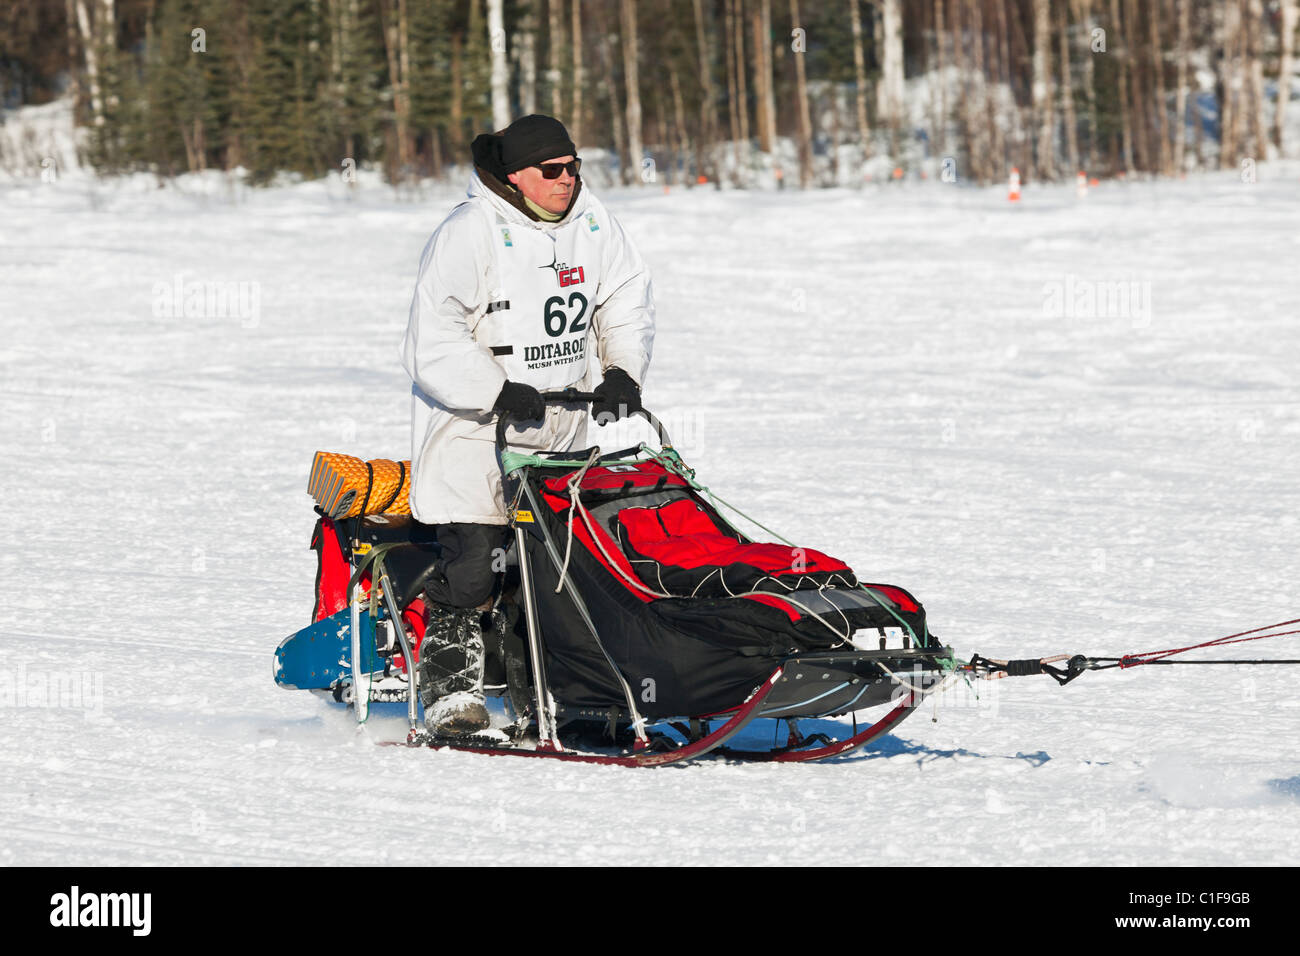 Musher Gerald Sousa competing in the 39th Iditarod Trail Sled Dog Race on Long Lake after leaving Willow Lake restart. - Stock Image